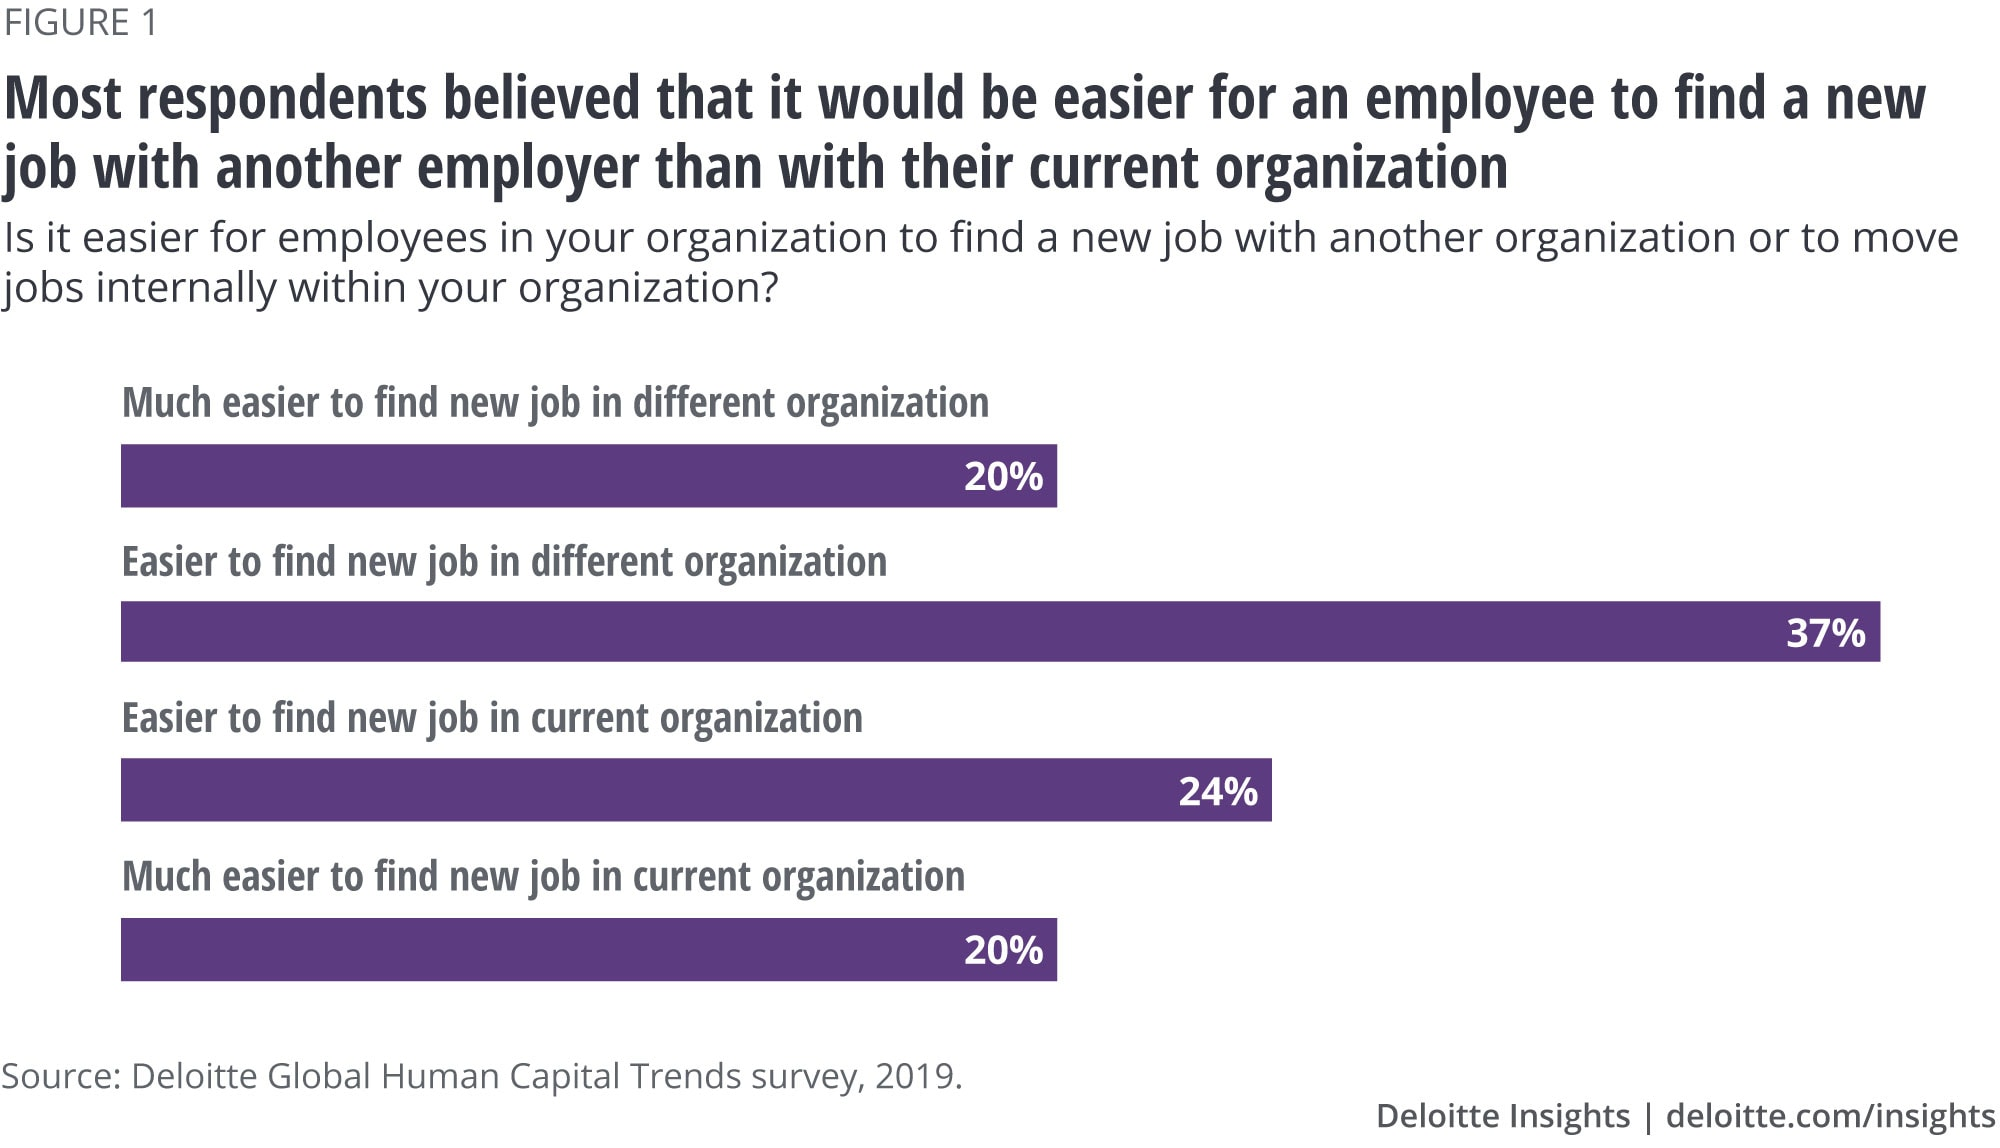 Most respondents believed that it would be easier for an employee to find a new job with another employer than with their current organization